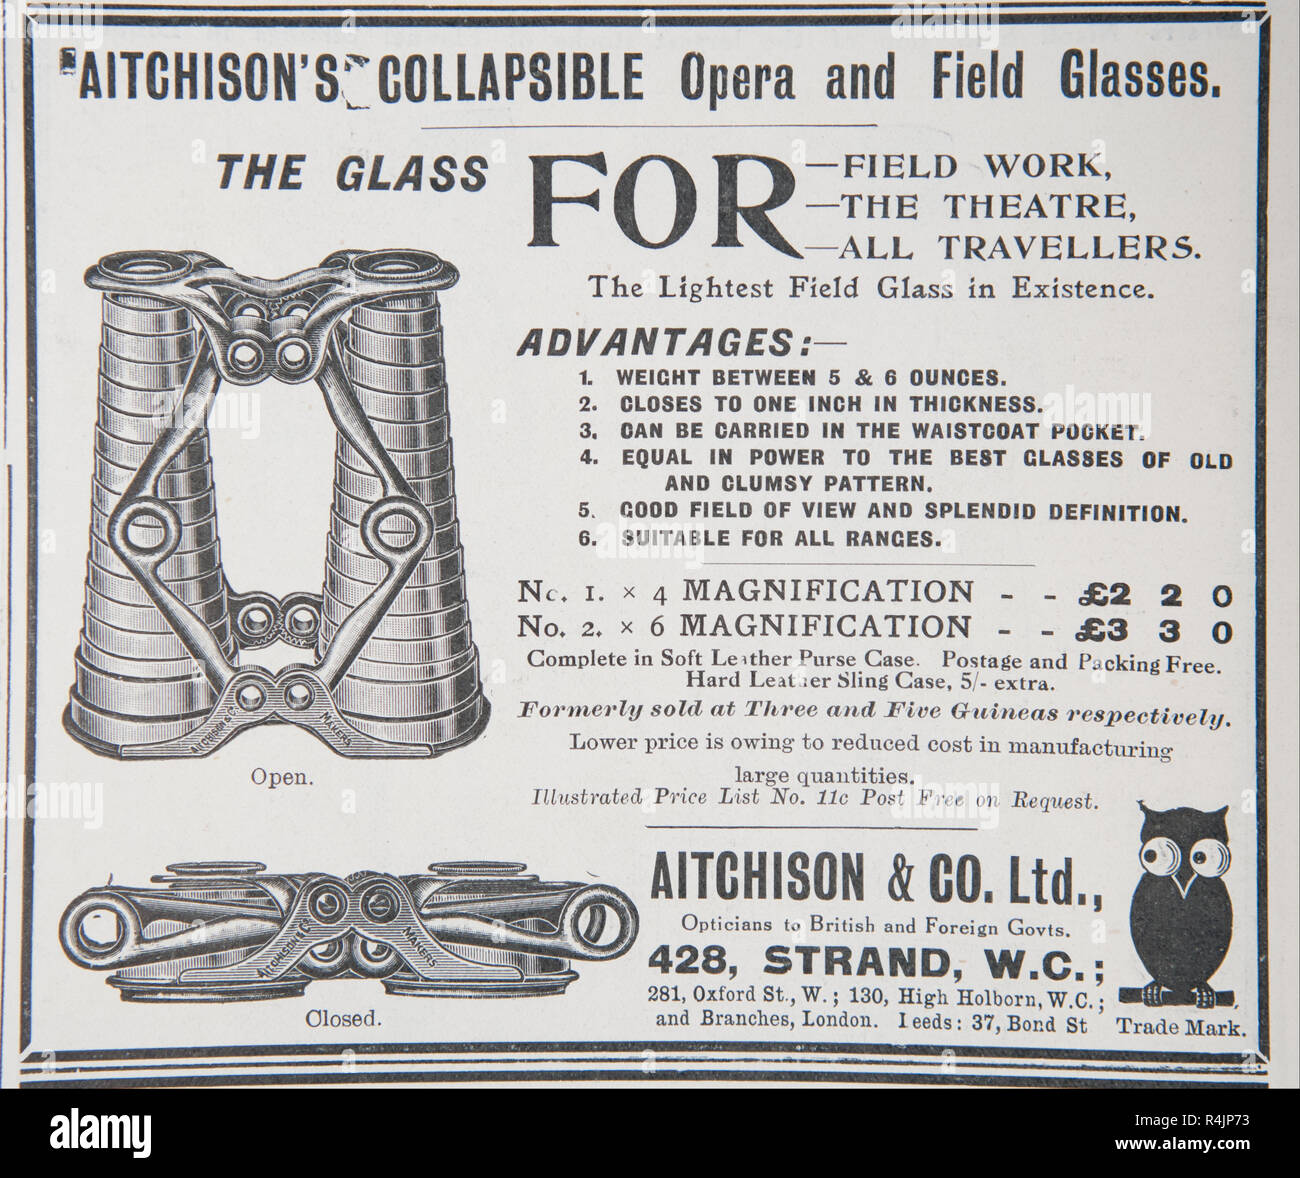 An old advert for Aitchison's collapsible opera and field glasses. From an old British magazine from the 1914-1918 period. - Stock Image